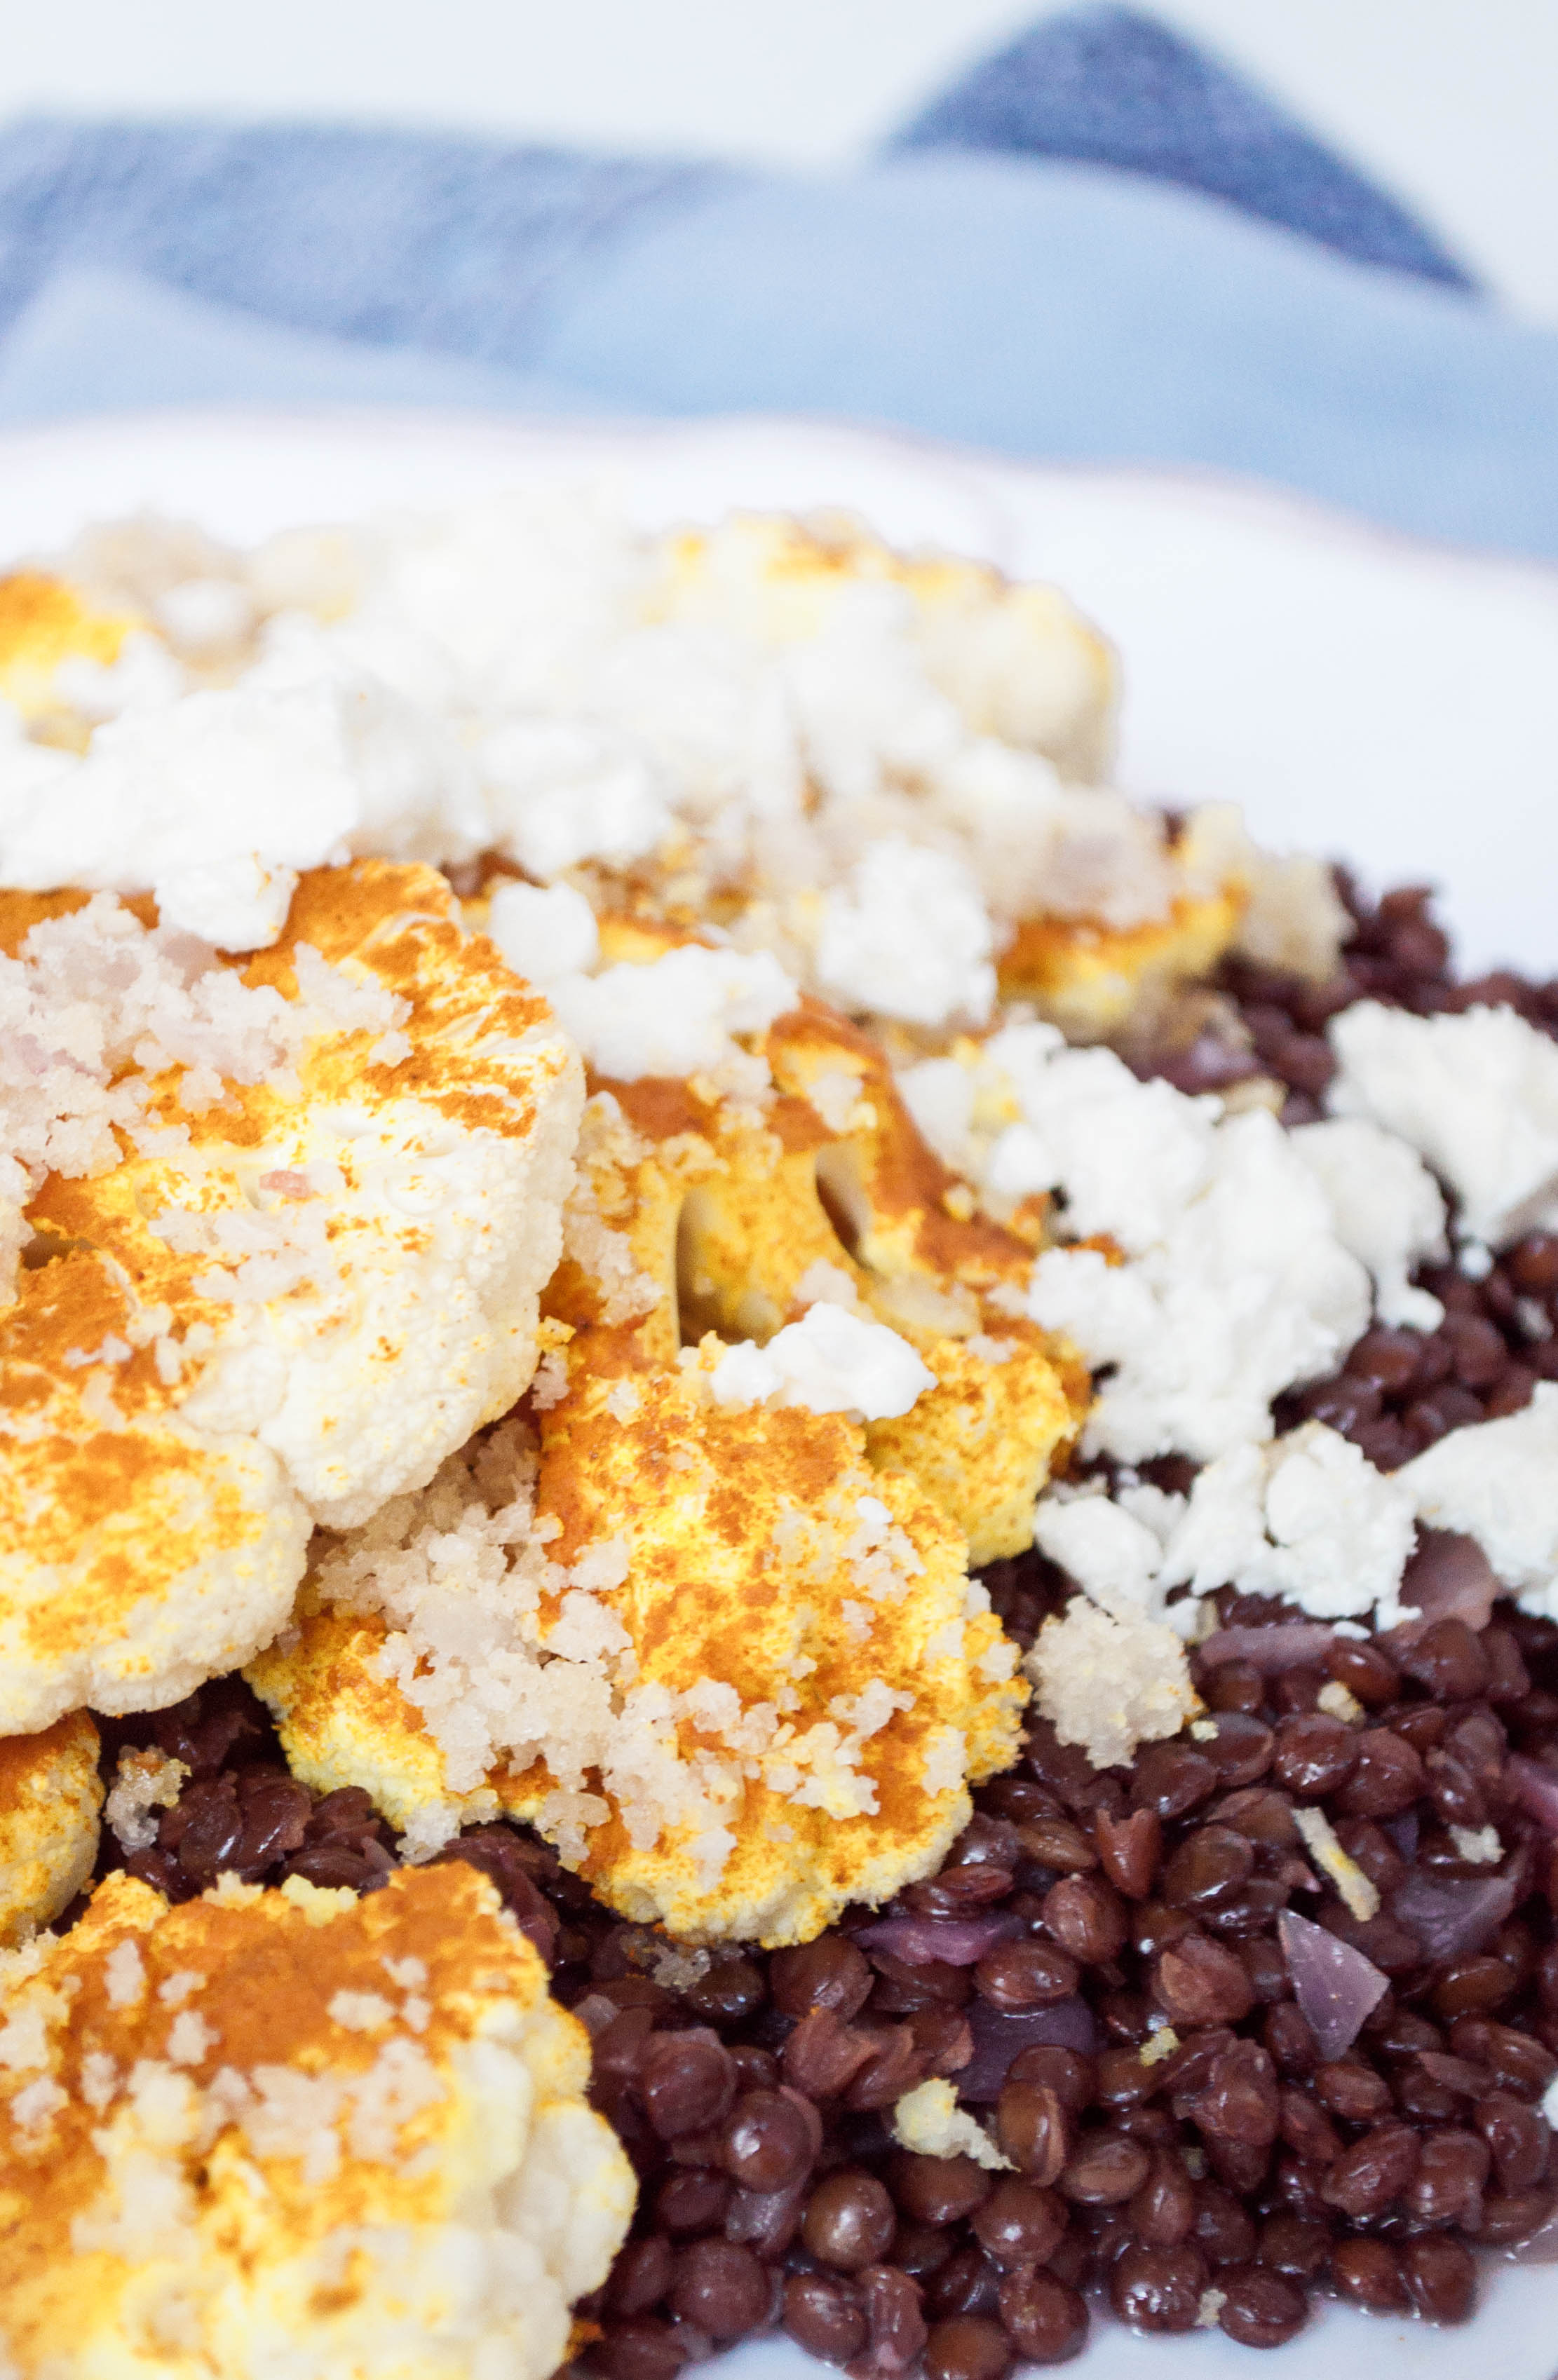 Turmeric and Panko Cauliflower with Black Lentils